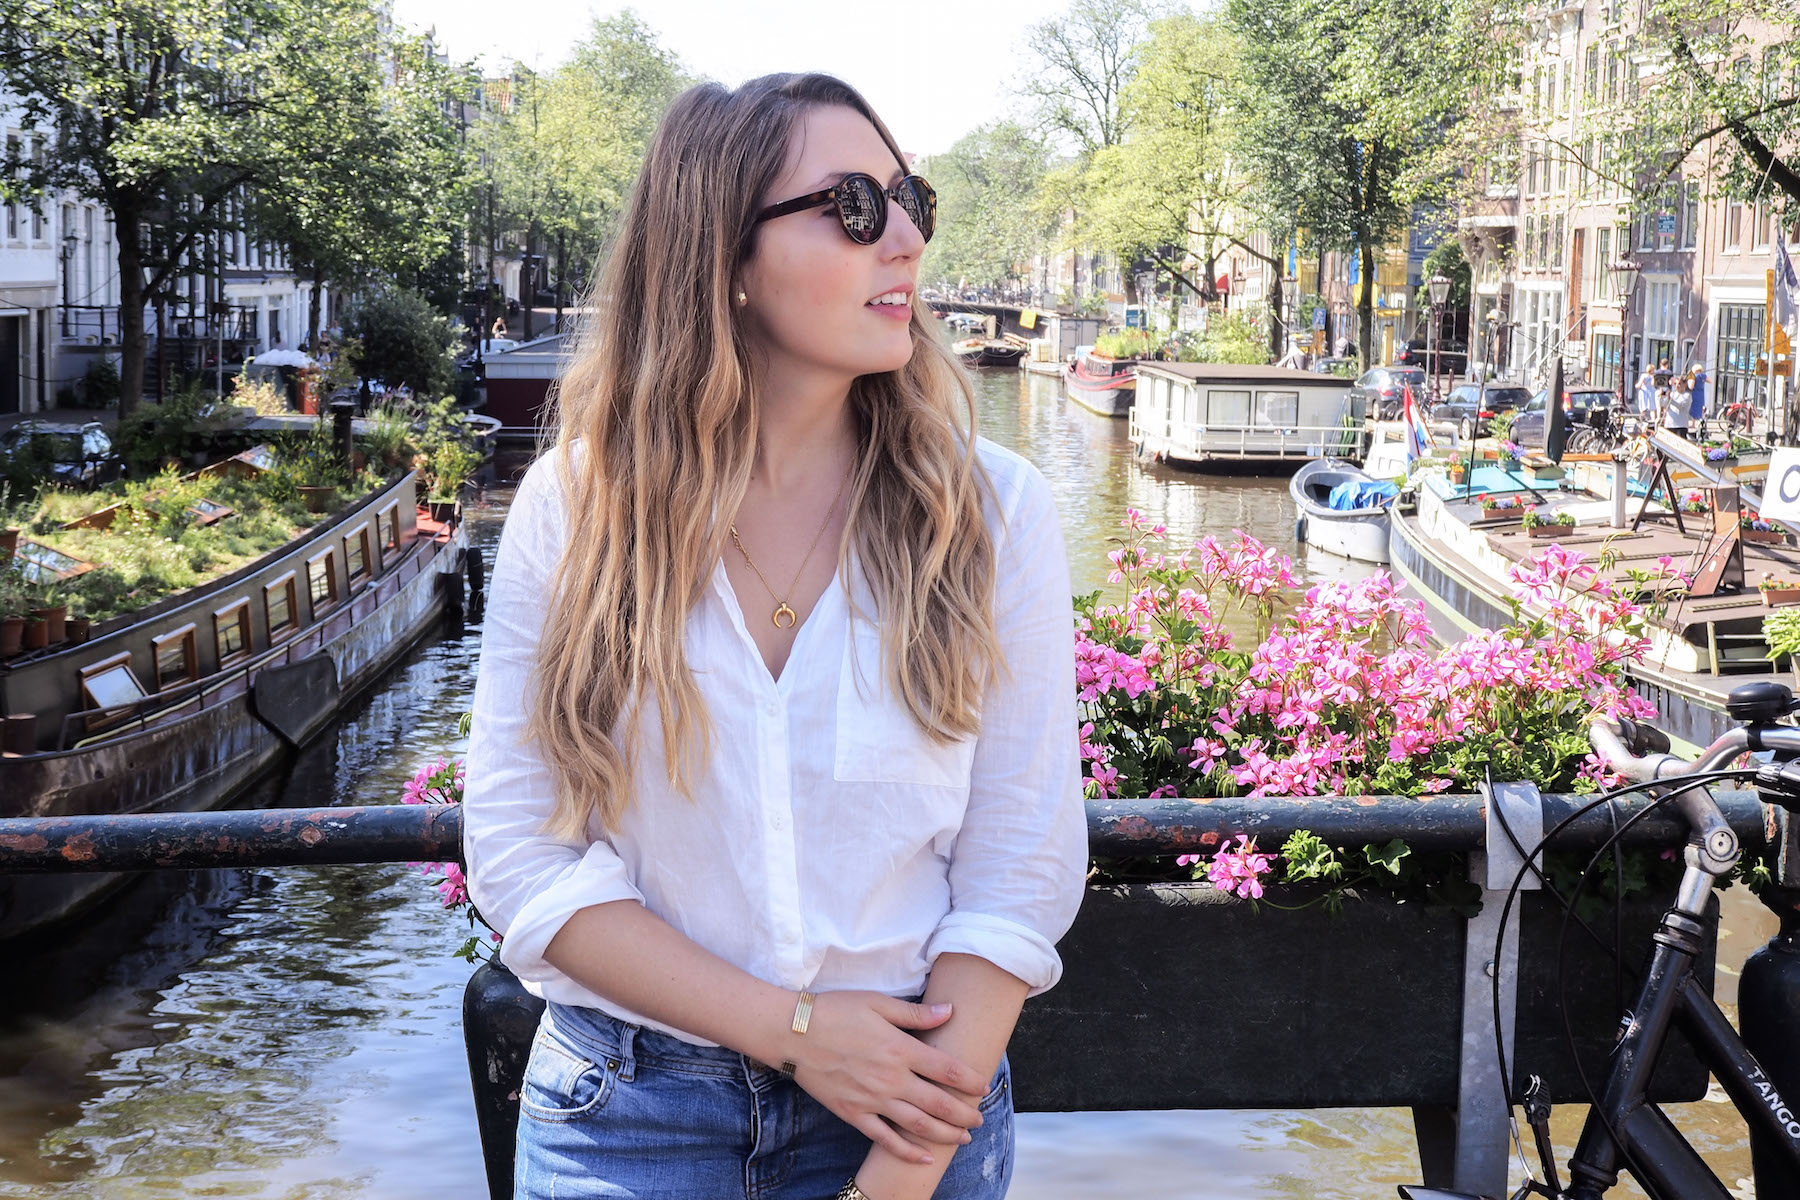 What I Wore in Amsterdam, Day 2: H&M cotton shirt, & Other Stories sunglasses, Warehouse boyfriend jeans, basket bag | Wolf & Stag